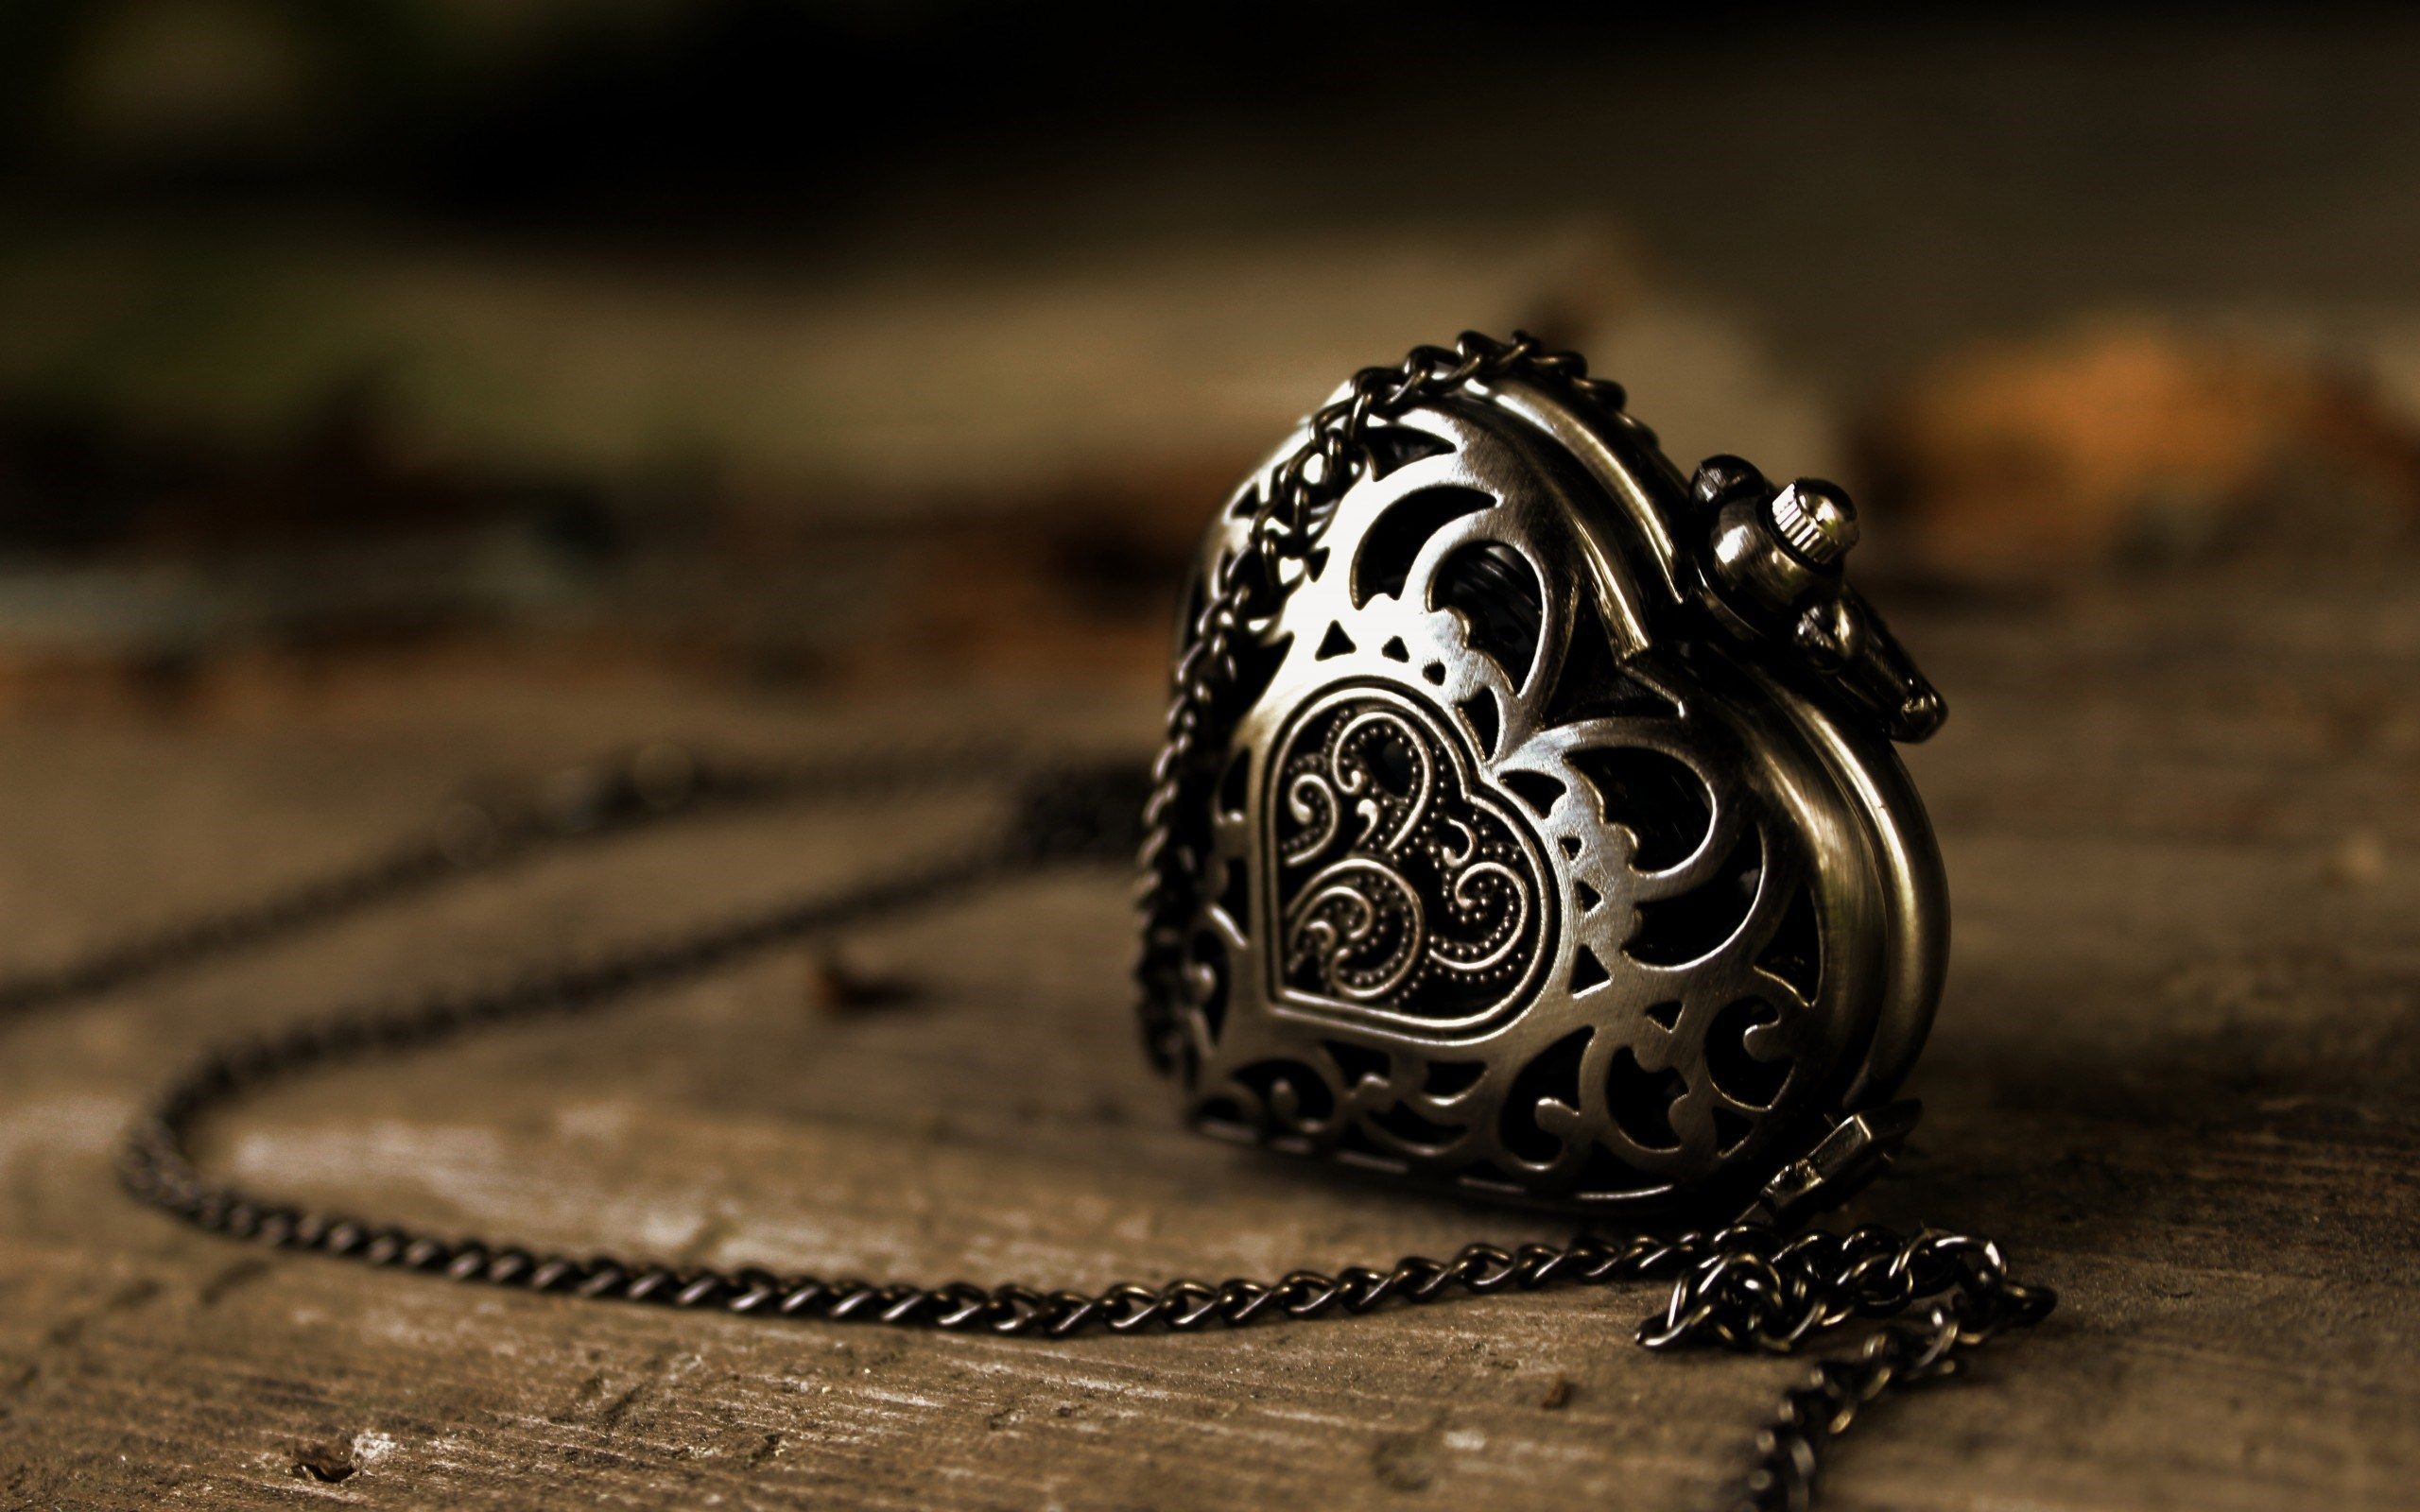 Pendant Wallpaper HD